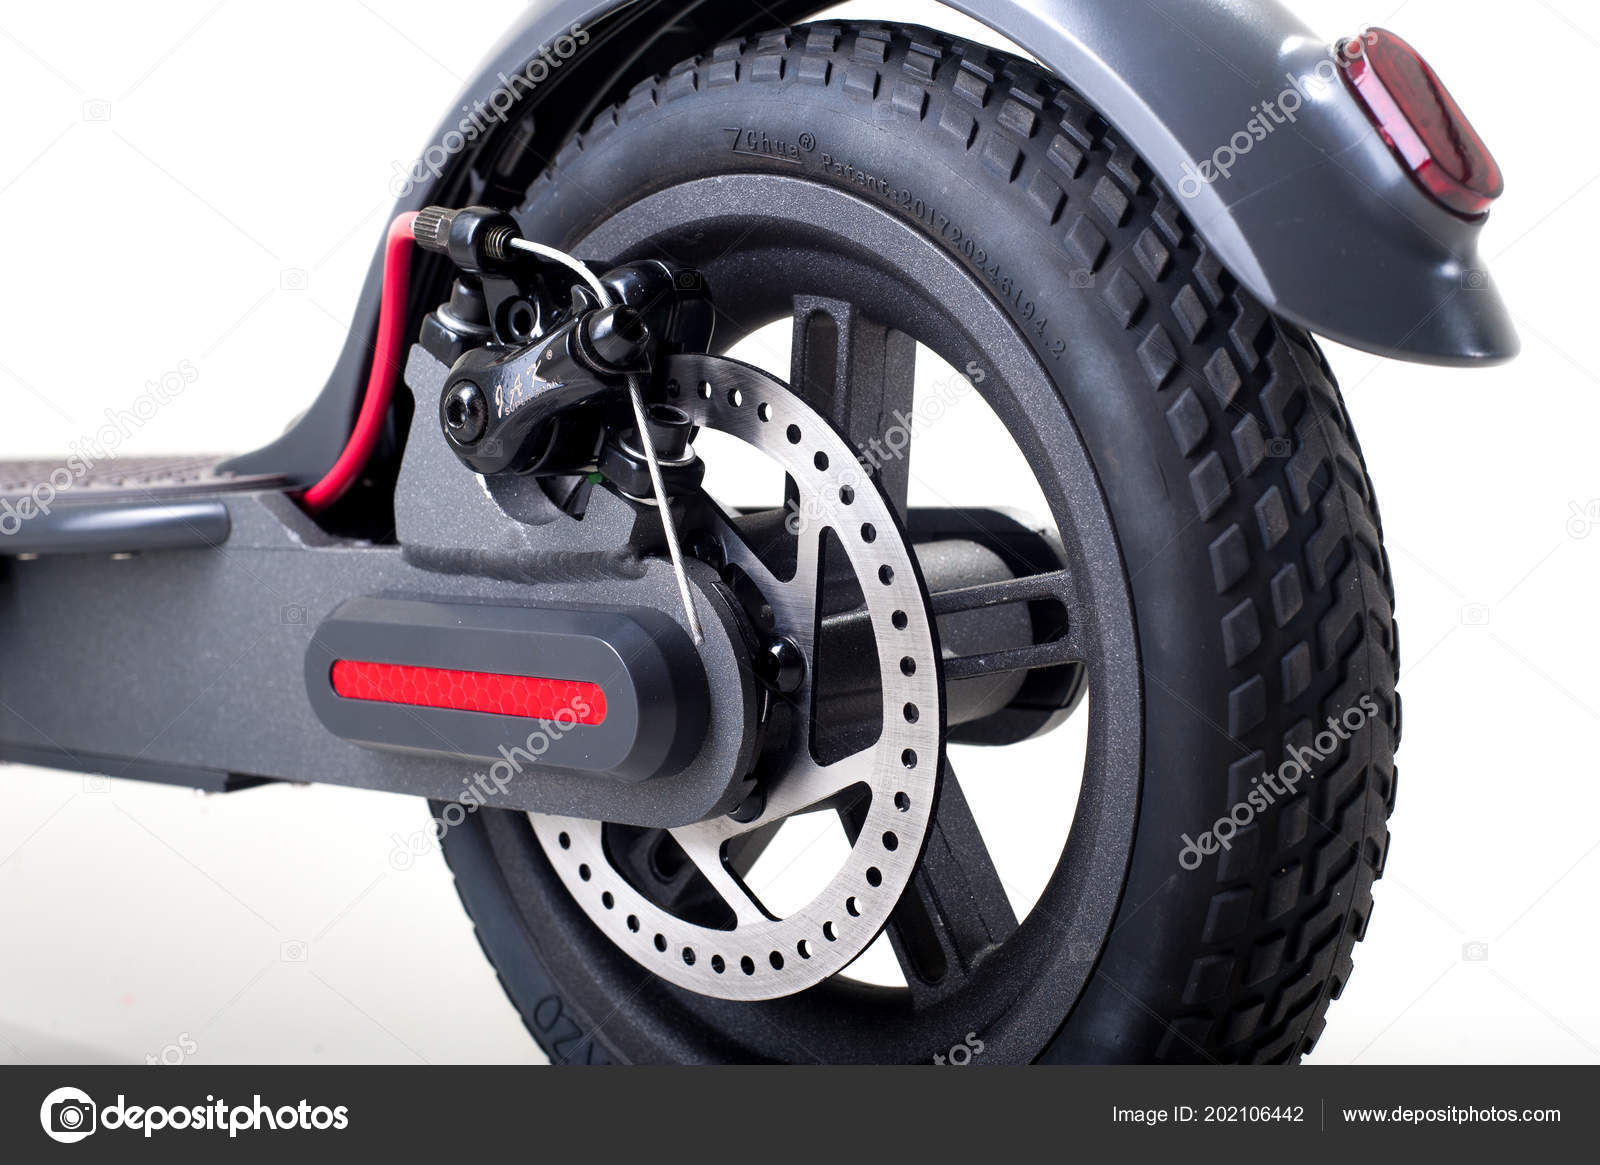 Electric Scooter Hoverboard Vehicle Stock Photo C Sergiomishin 202106442